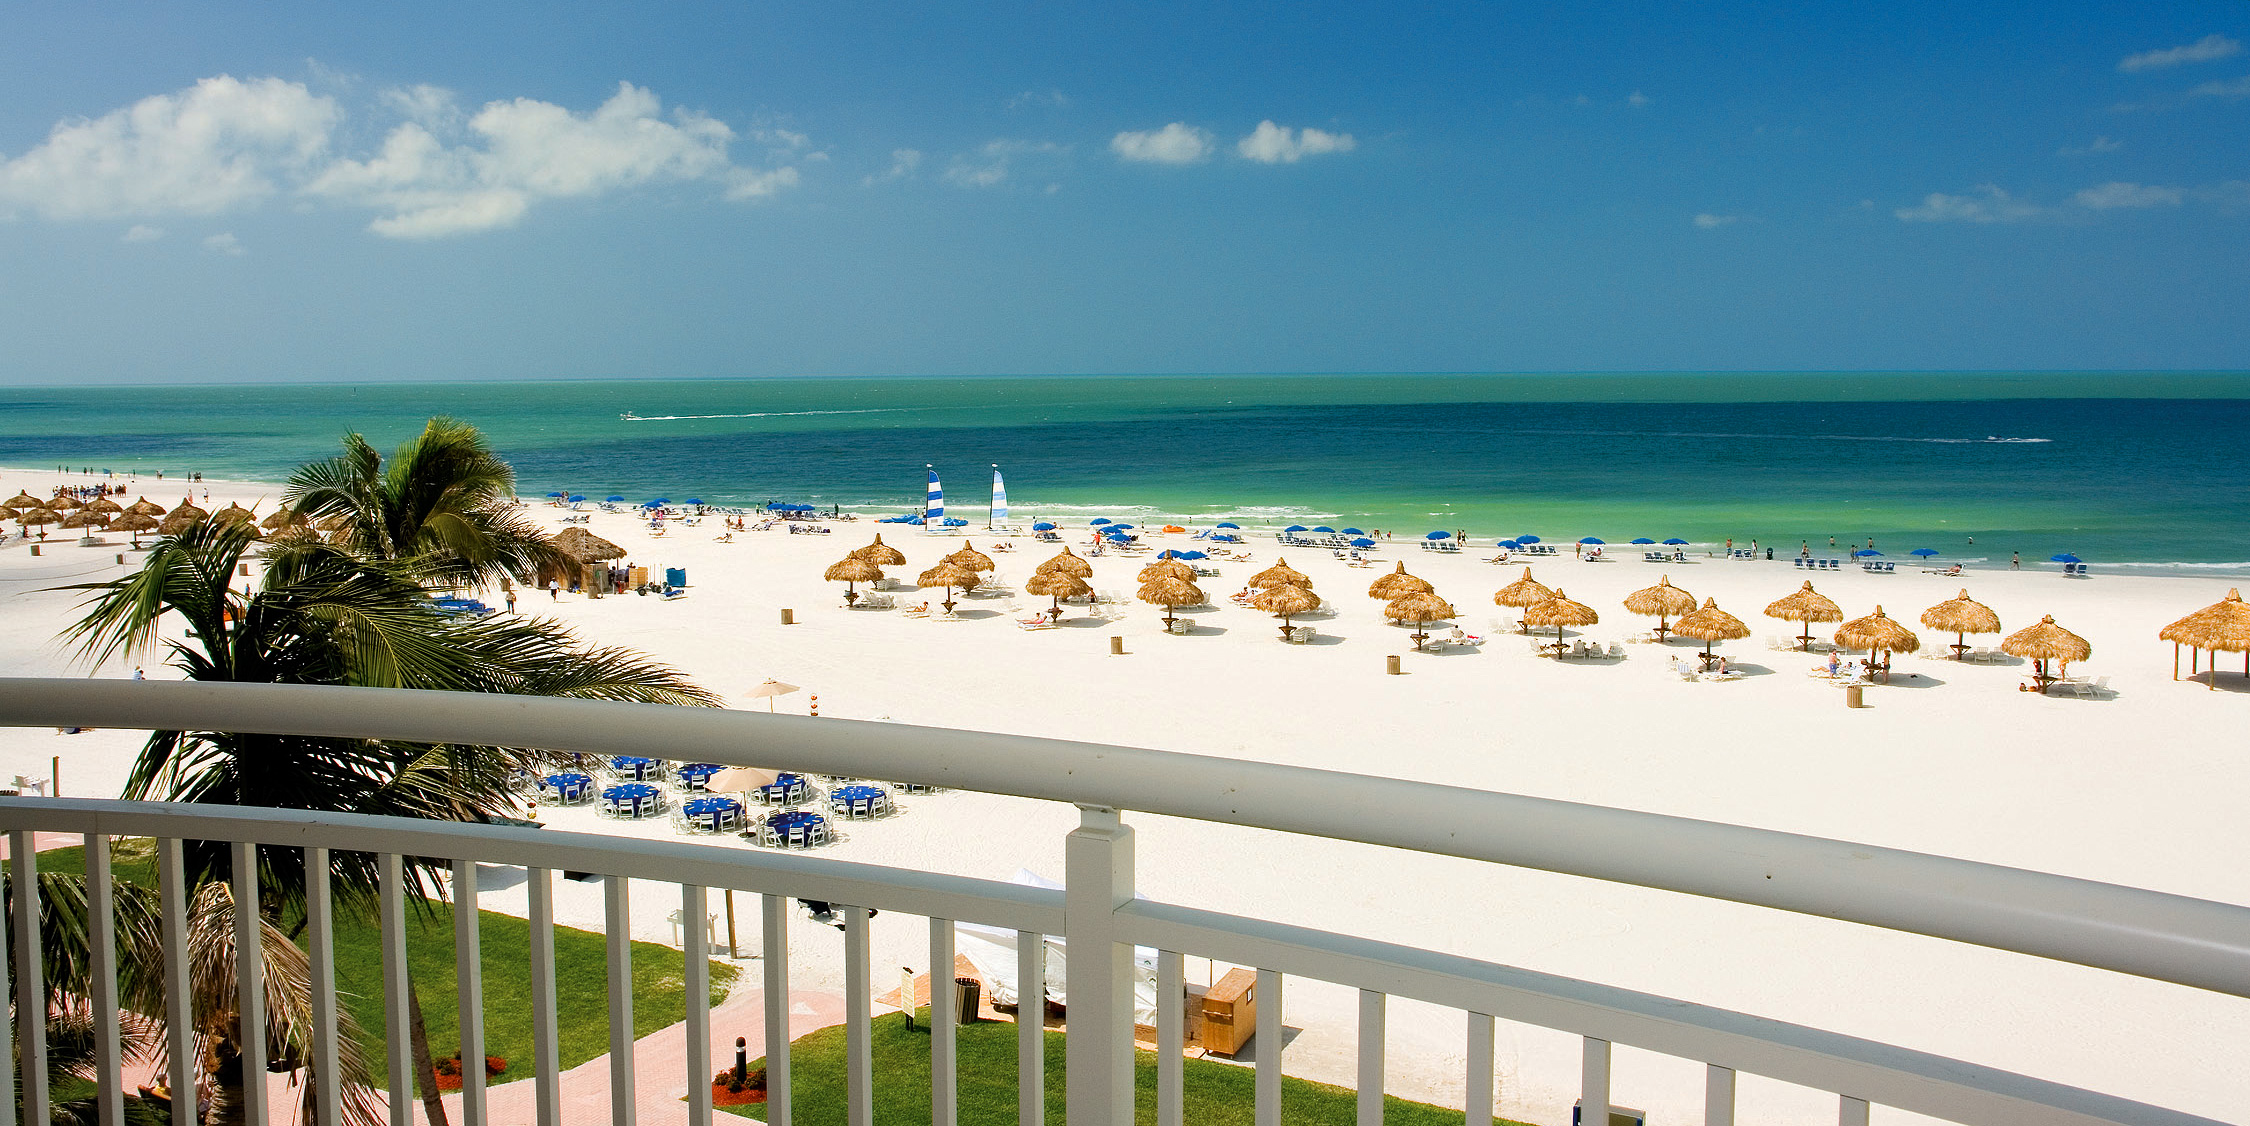 Beachview of Marriott Resort Marco Island, Florida